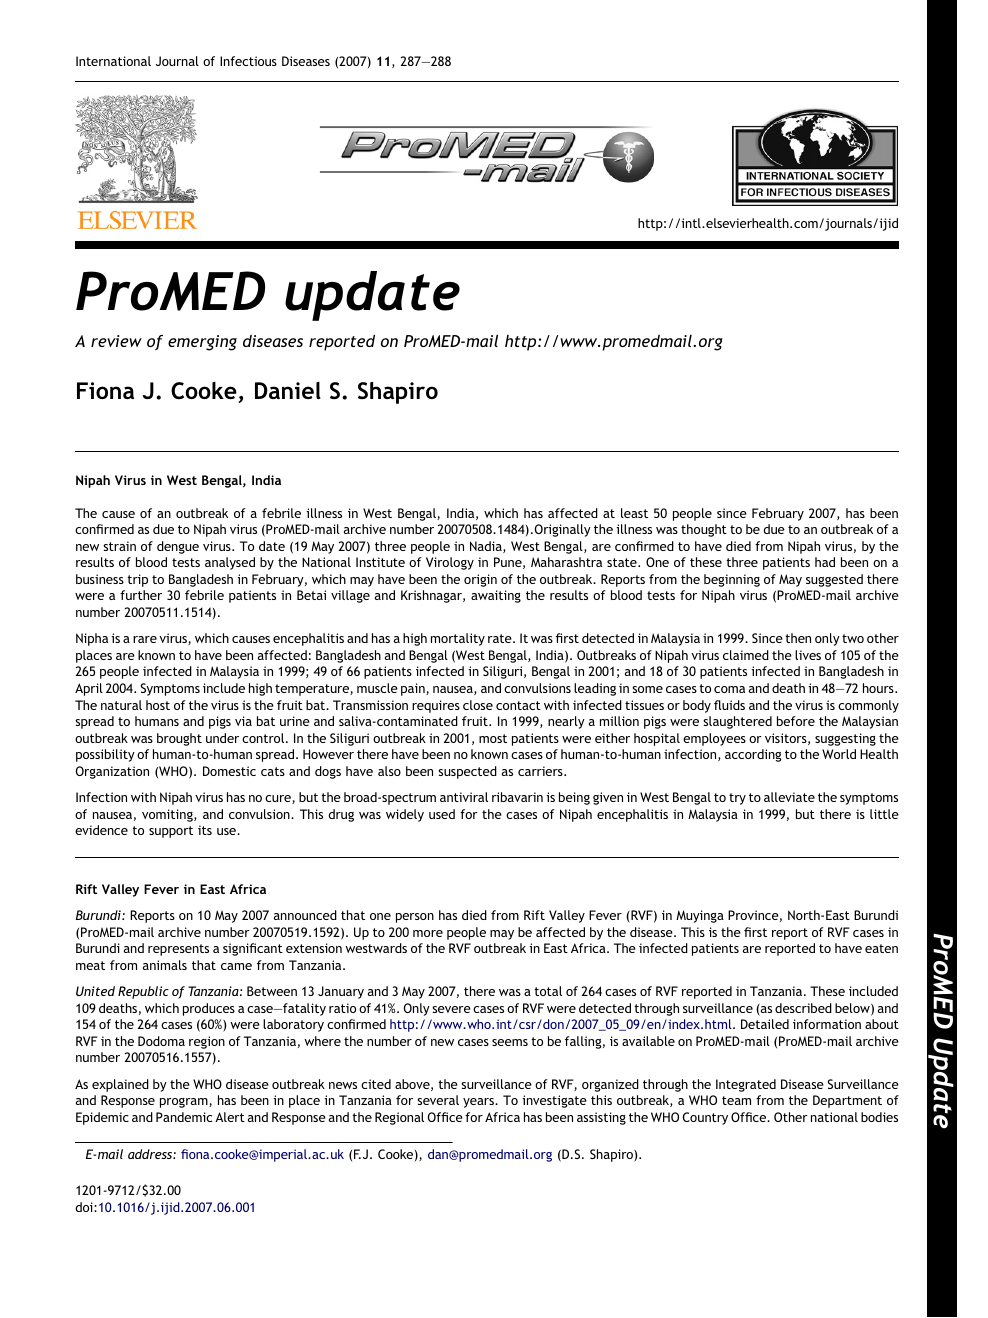 ProMED update – topic of research paper in Health sciences